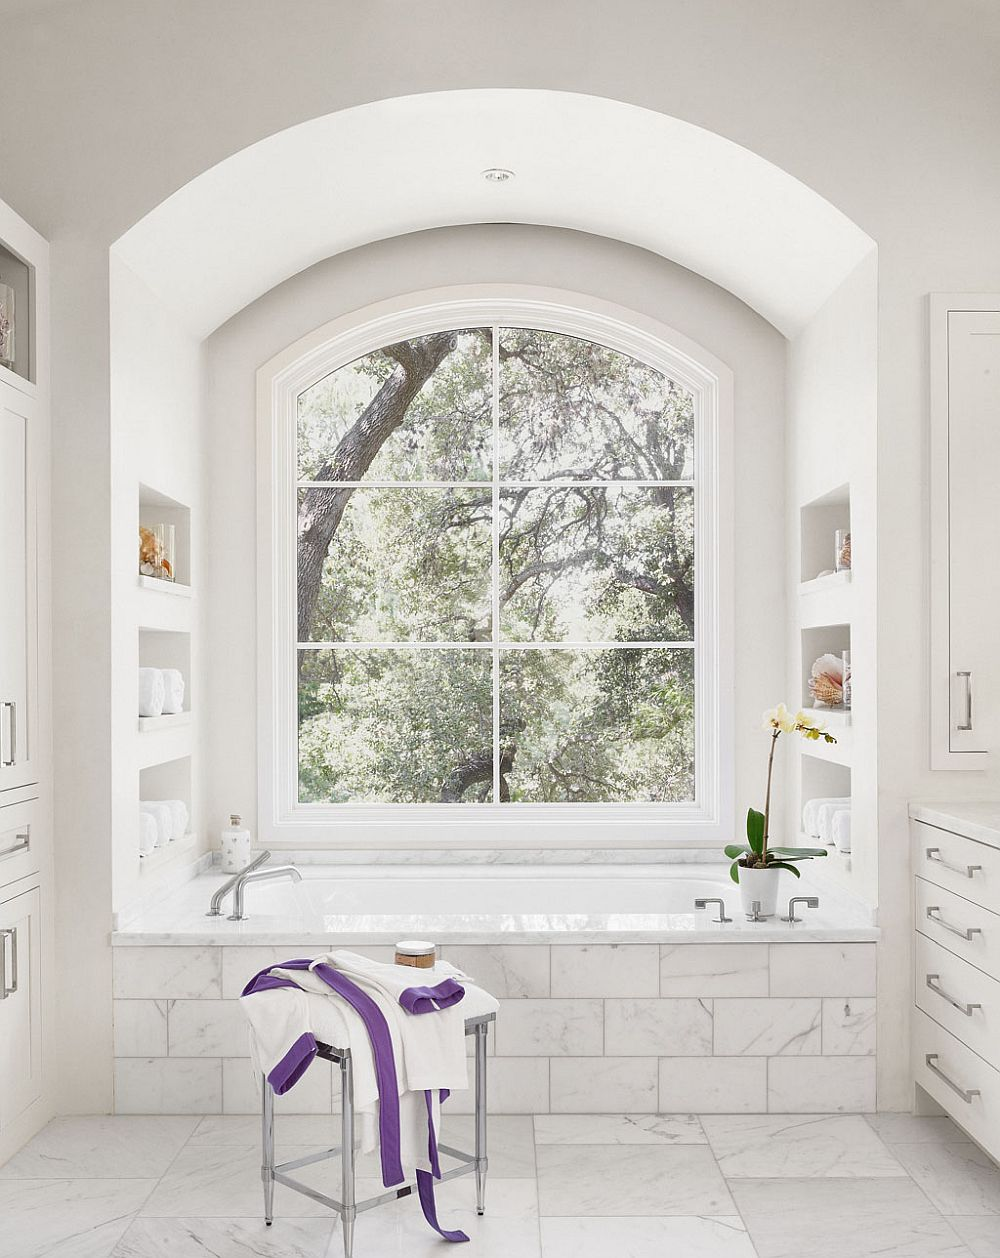 All white modern bathroom of the Texas home with a view of the leafy outdoors